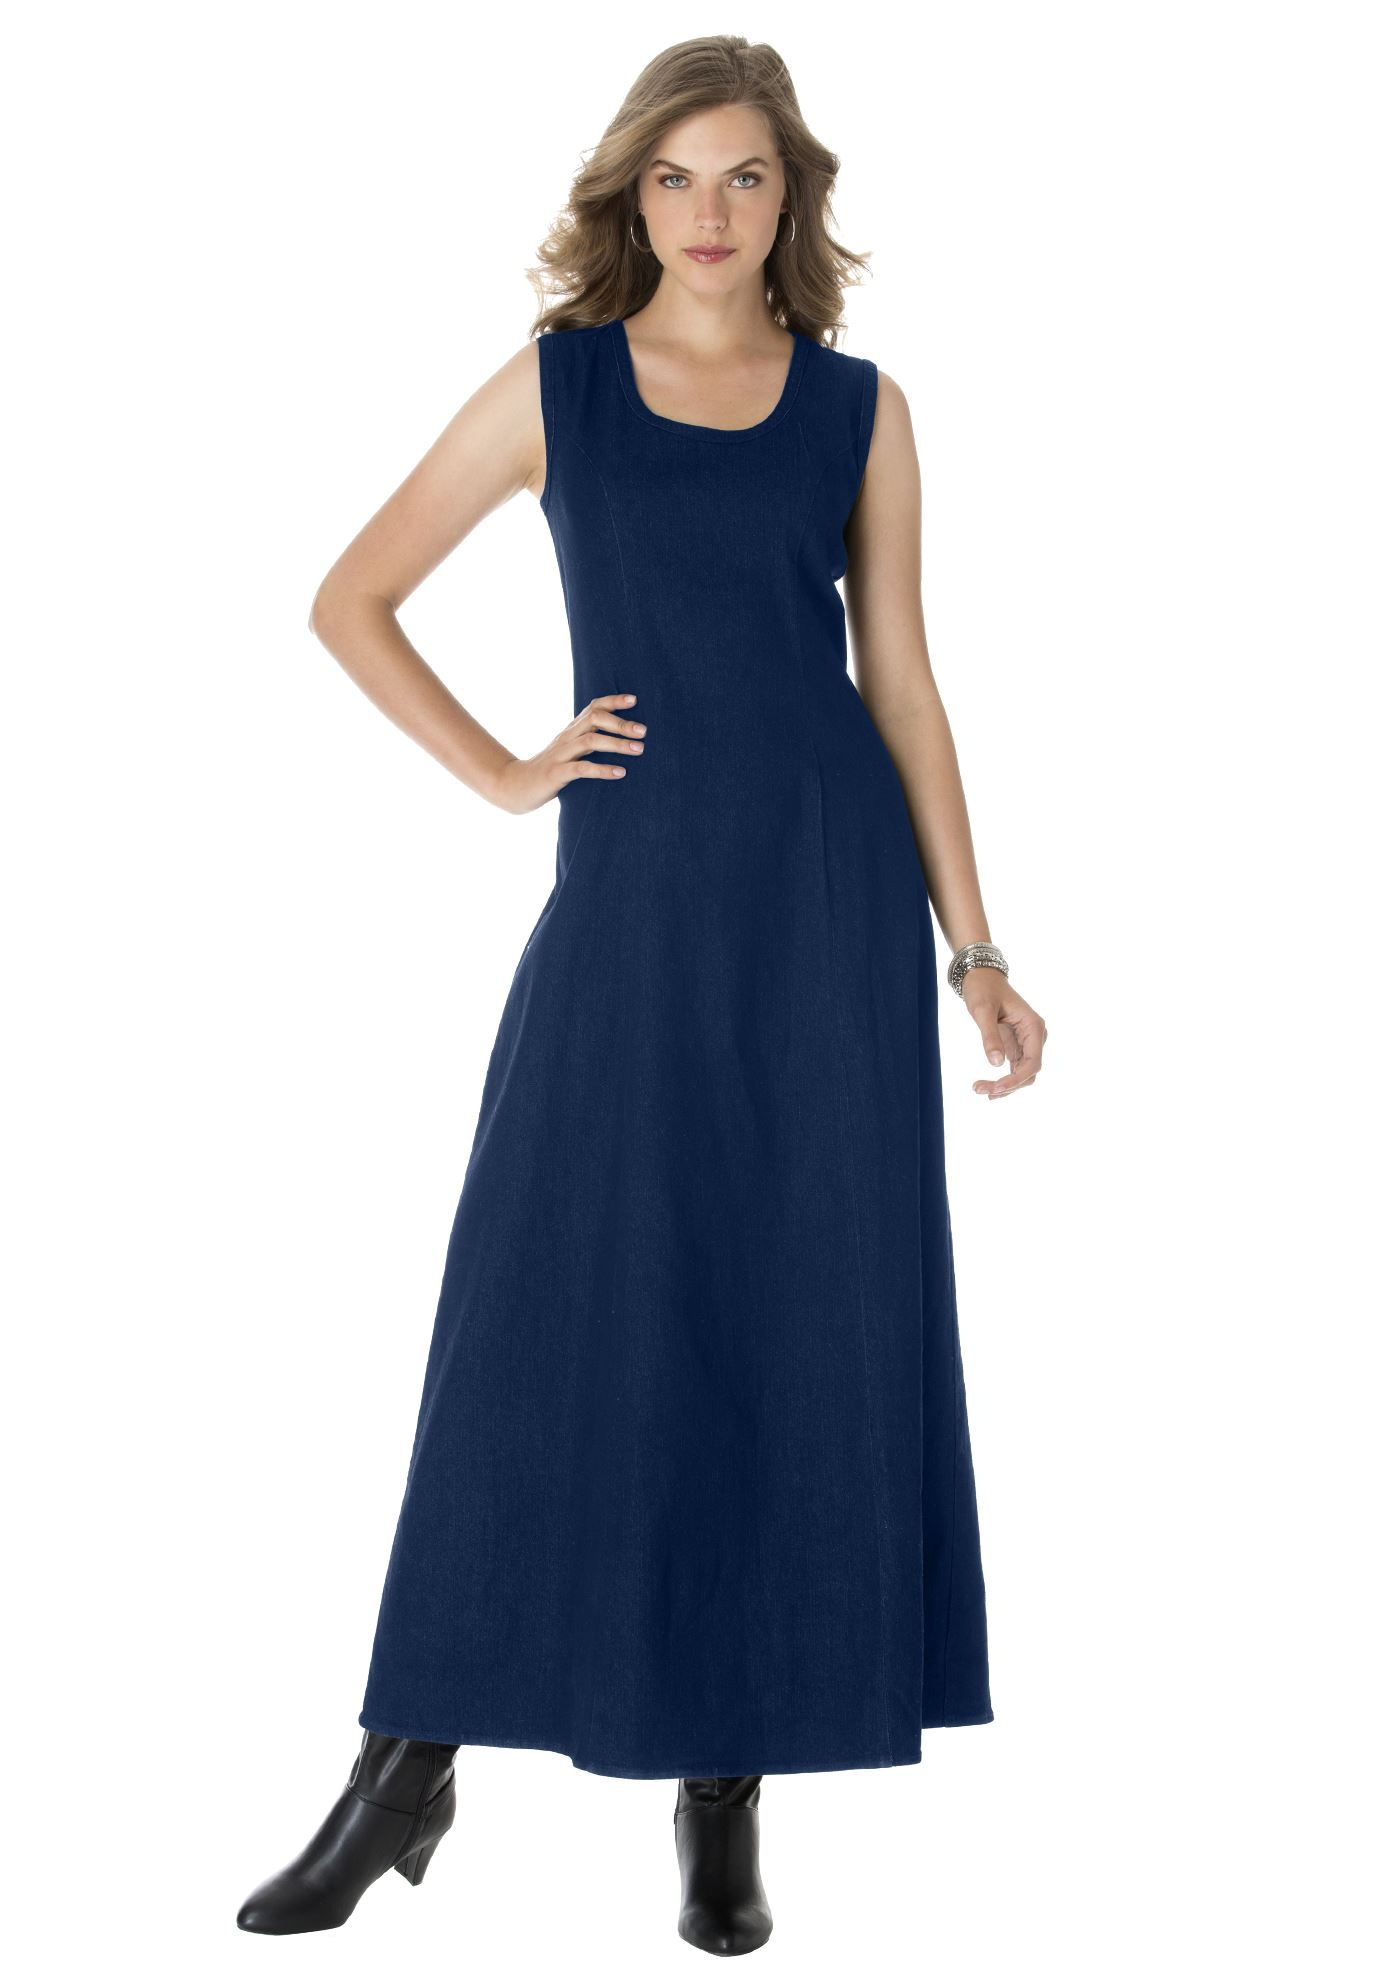 Denim Maxi Dress | Plus Size Casual Dresses | Jessica London ...